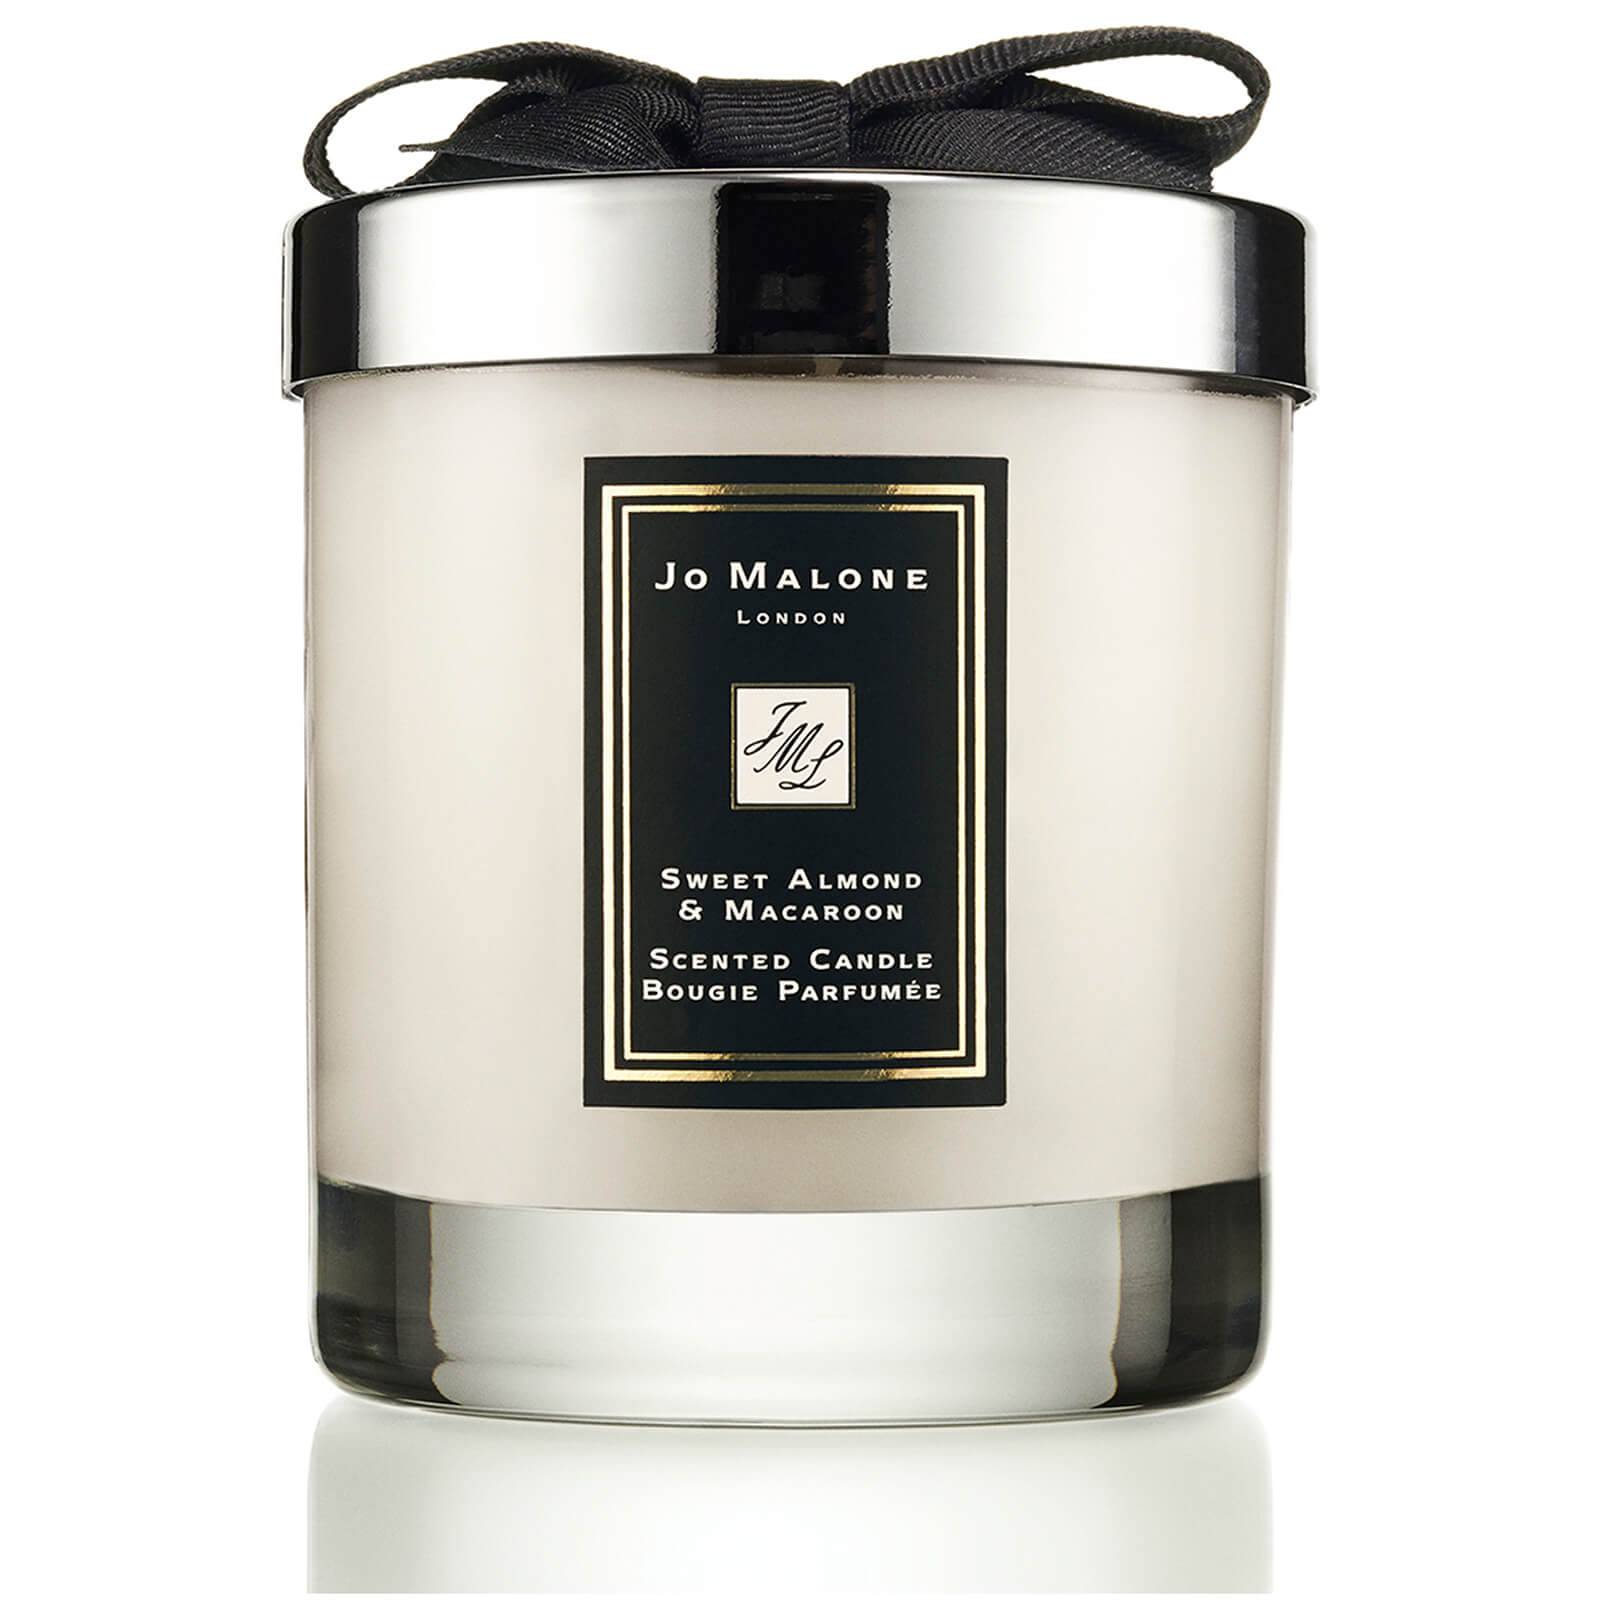 Jo Malone London Sweet Almond and Macaroon Home Candle 200g